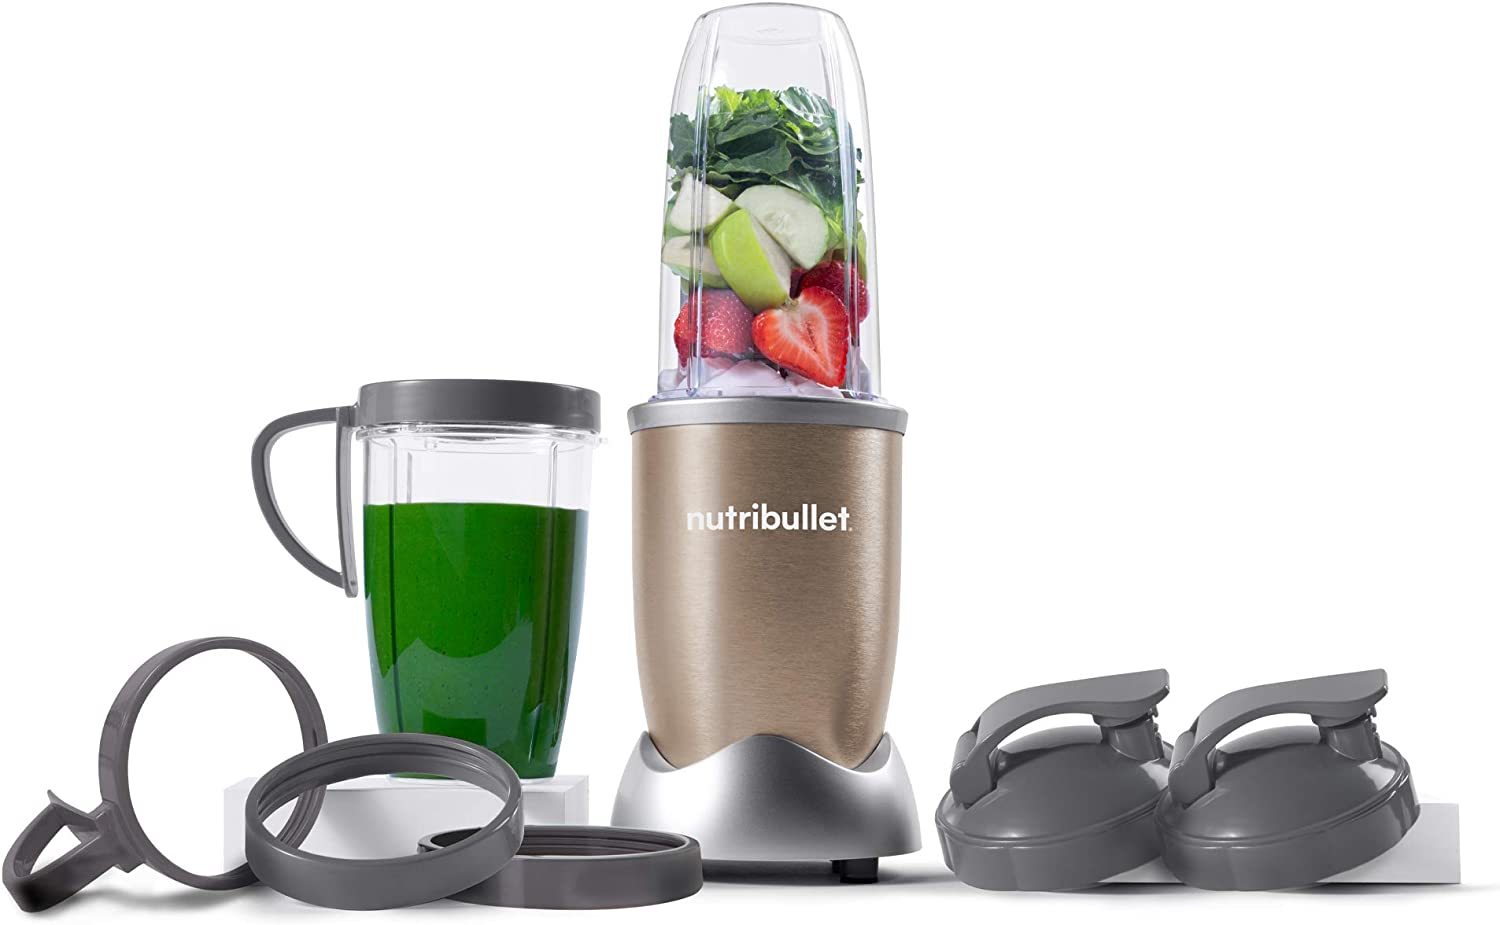 NutriBullet Pro – 13-Piece High-Speed Blender for Indian Cooking